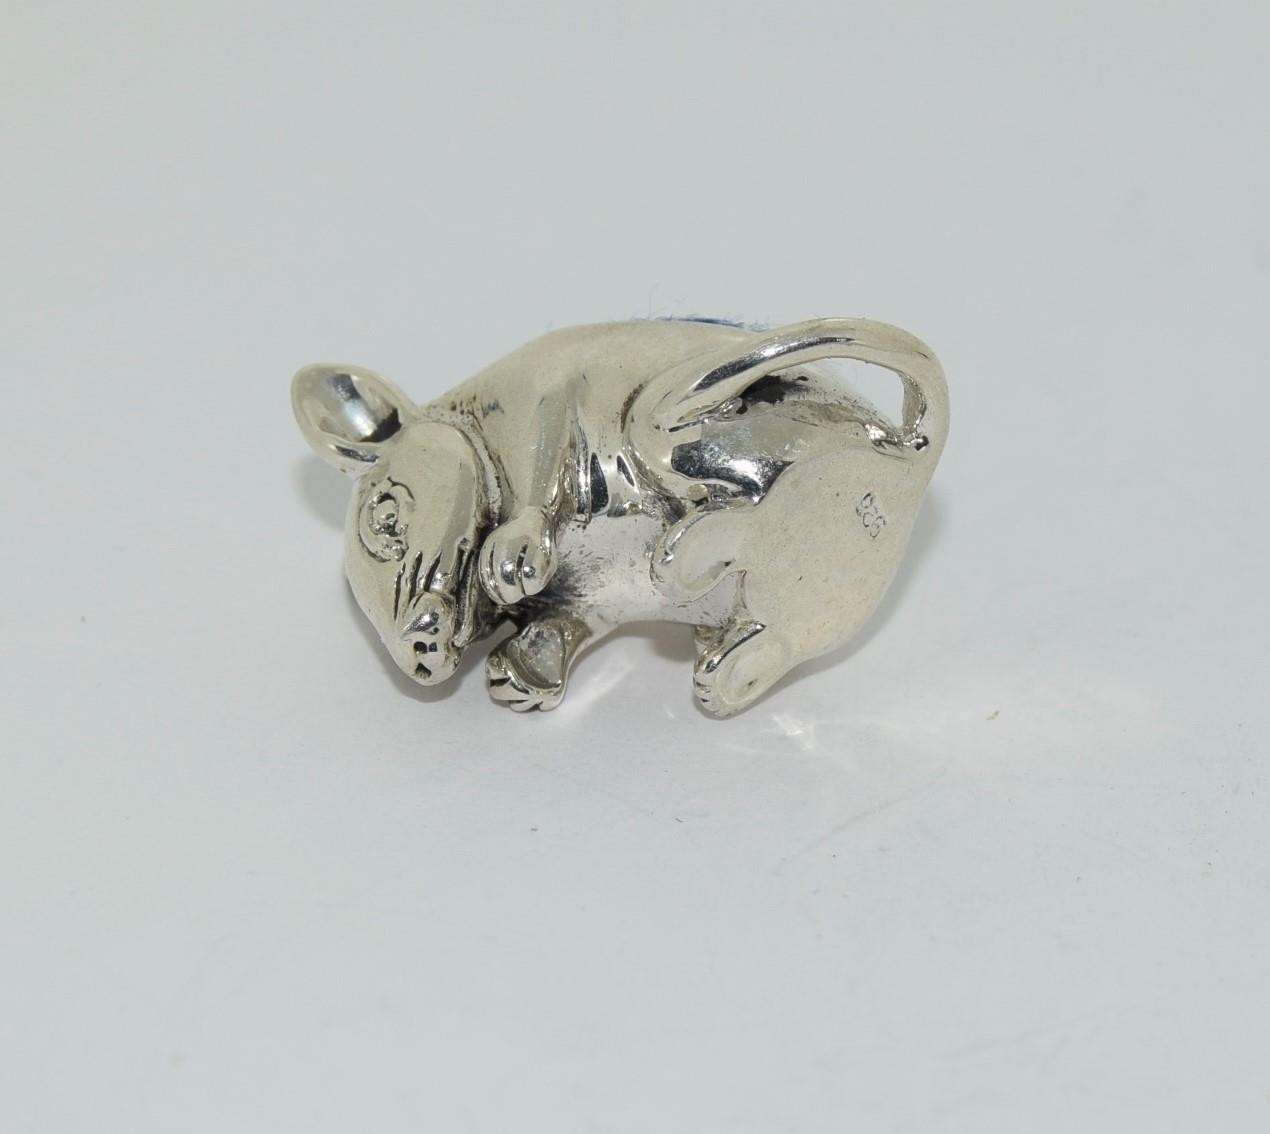 A silver mouse pincushion stamped 925 - Image 4 of 4